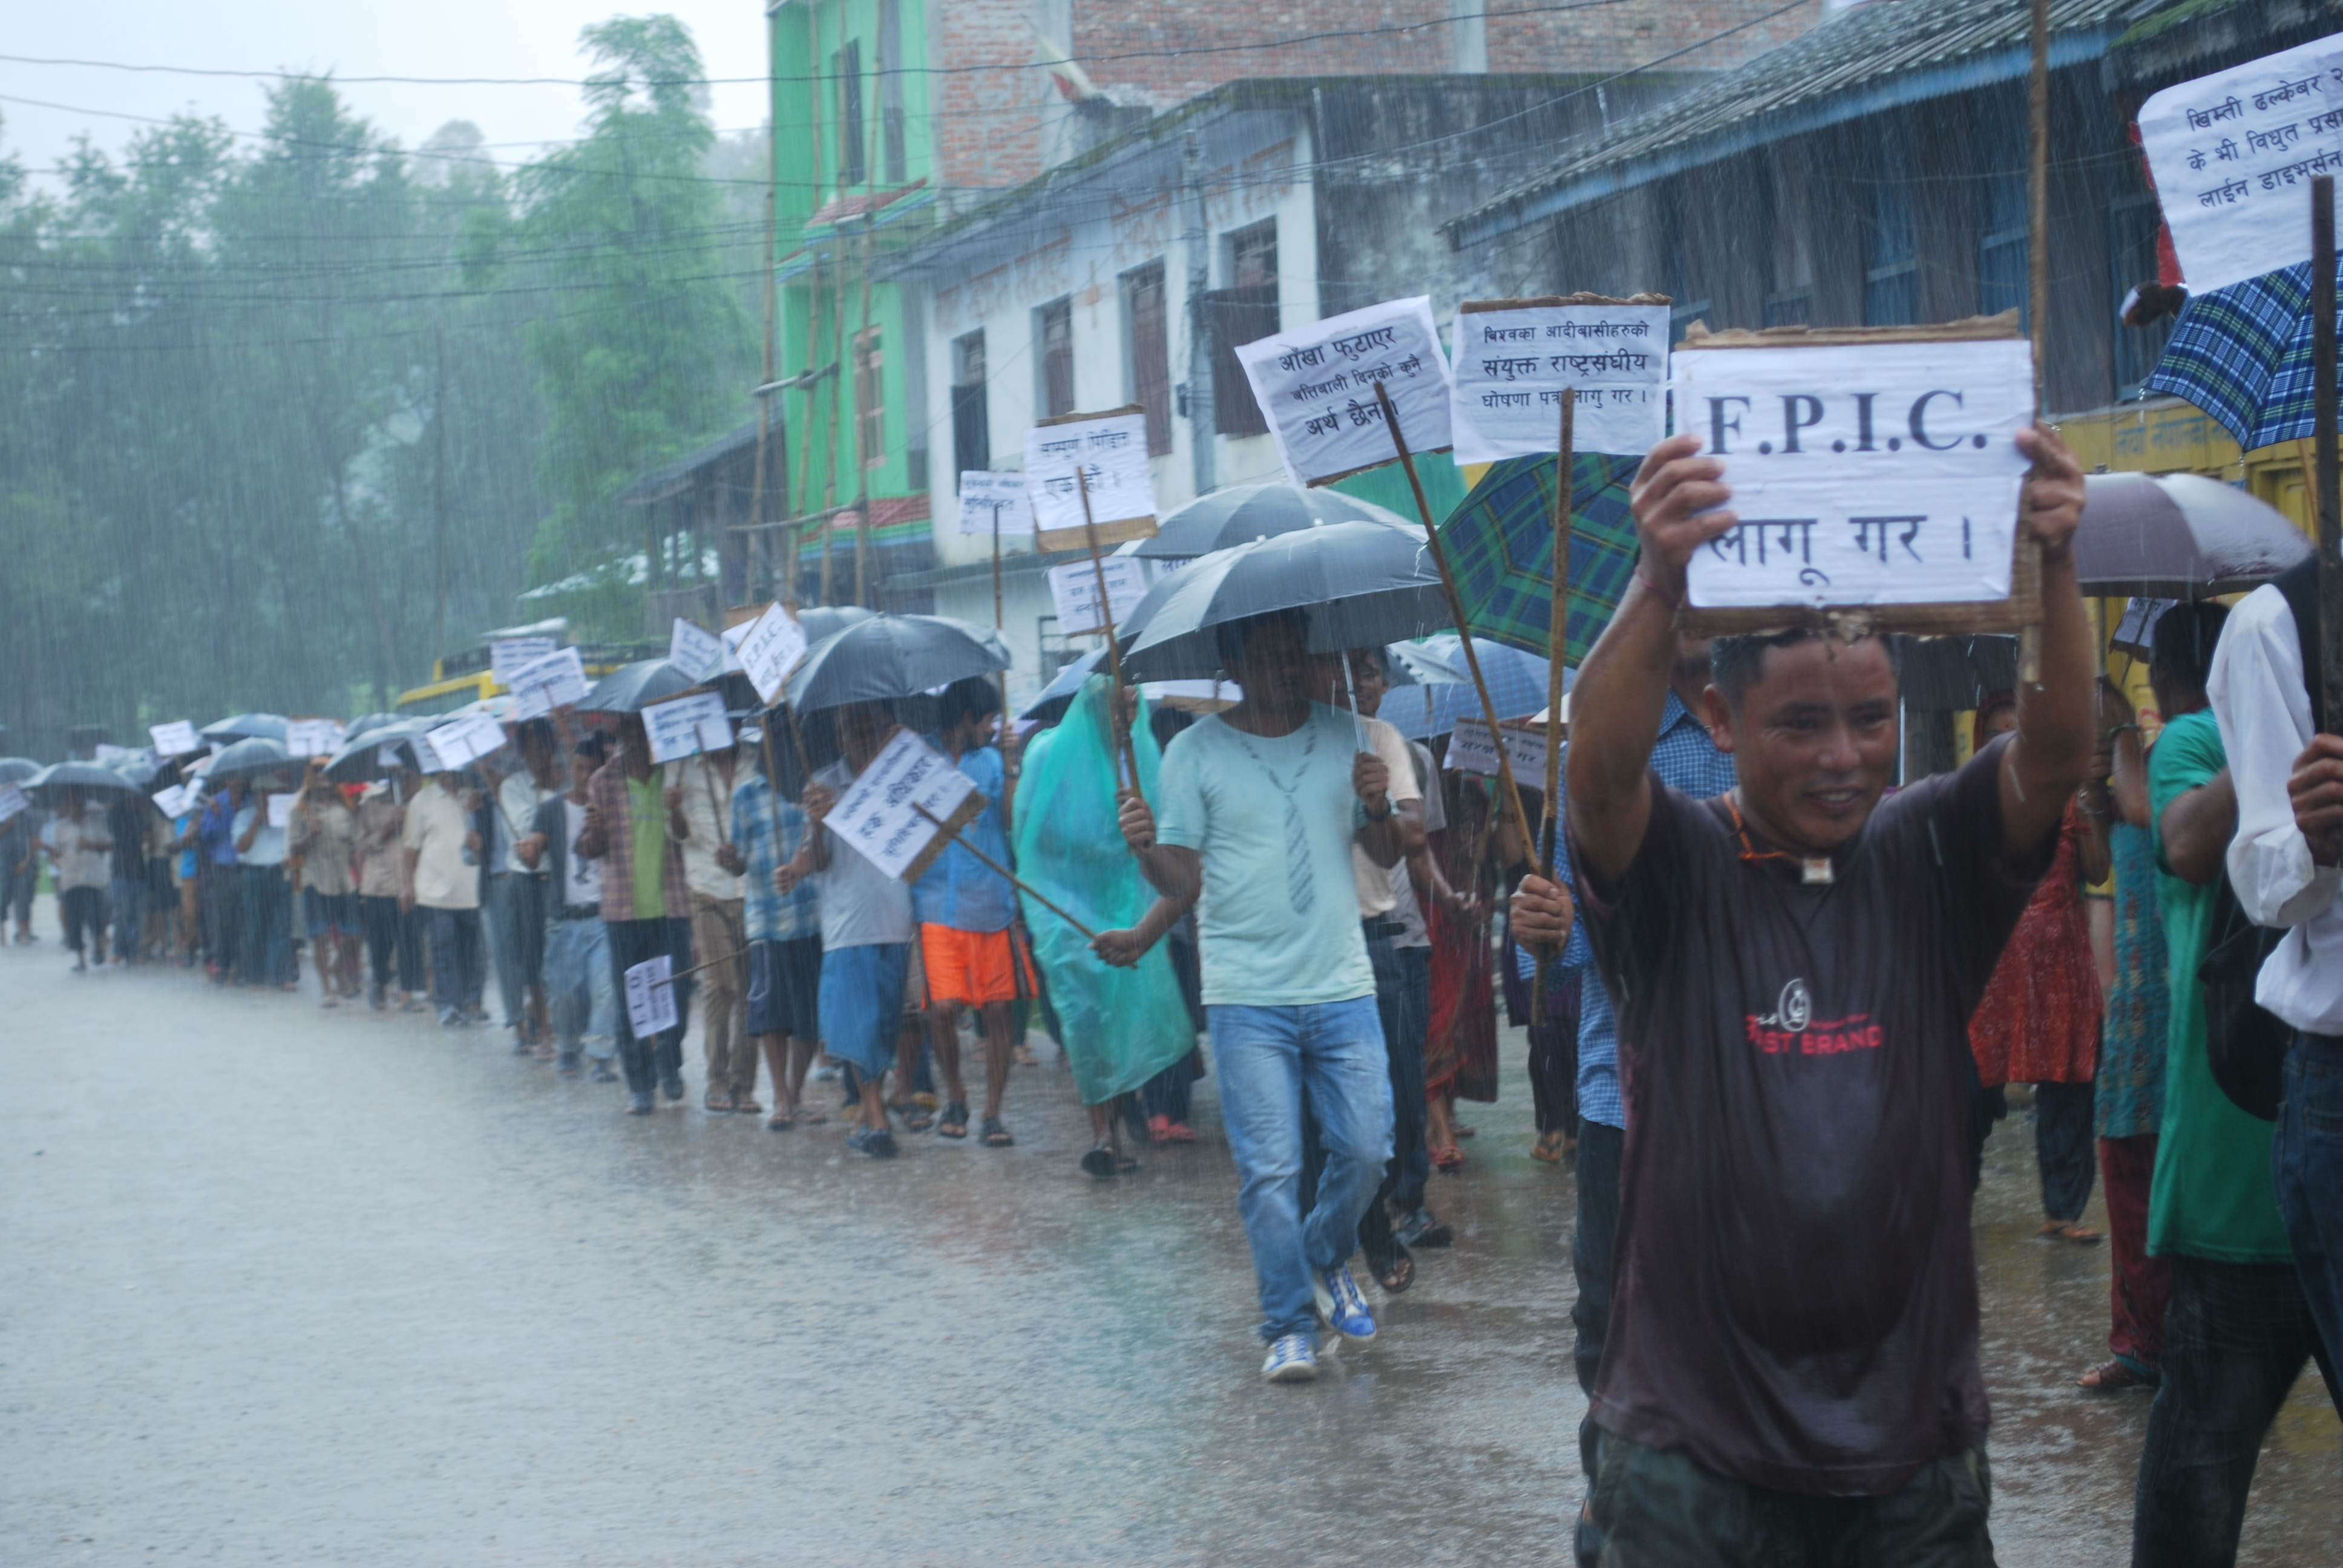 Protestors calling for free prior and informed consent (FPIC) during a September 2013 protest in Sindhuli Bazar, Nepal. Photo: Shankar Limbu